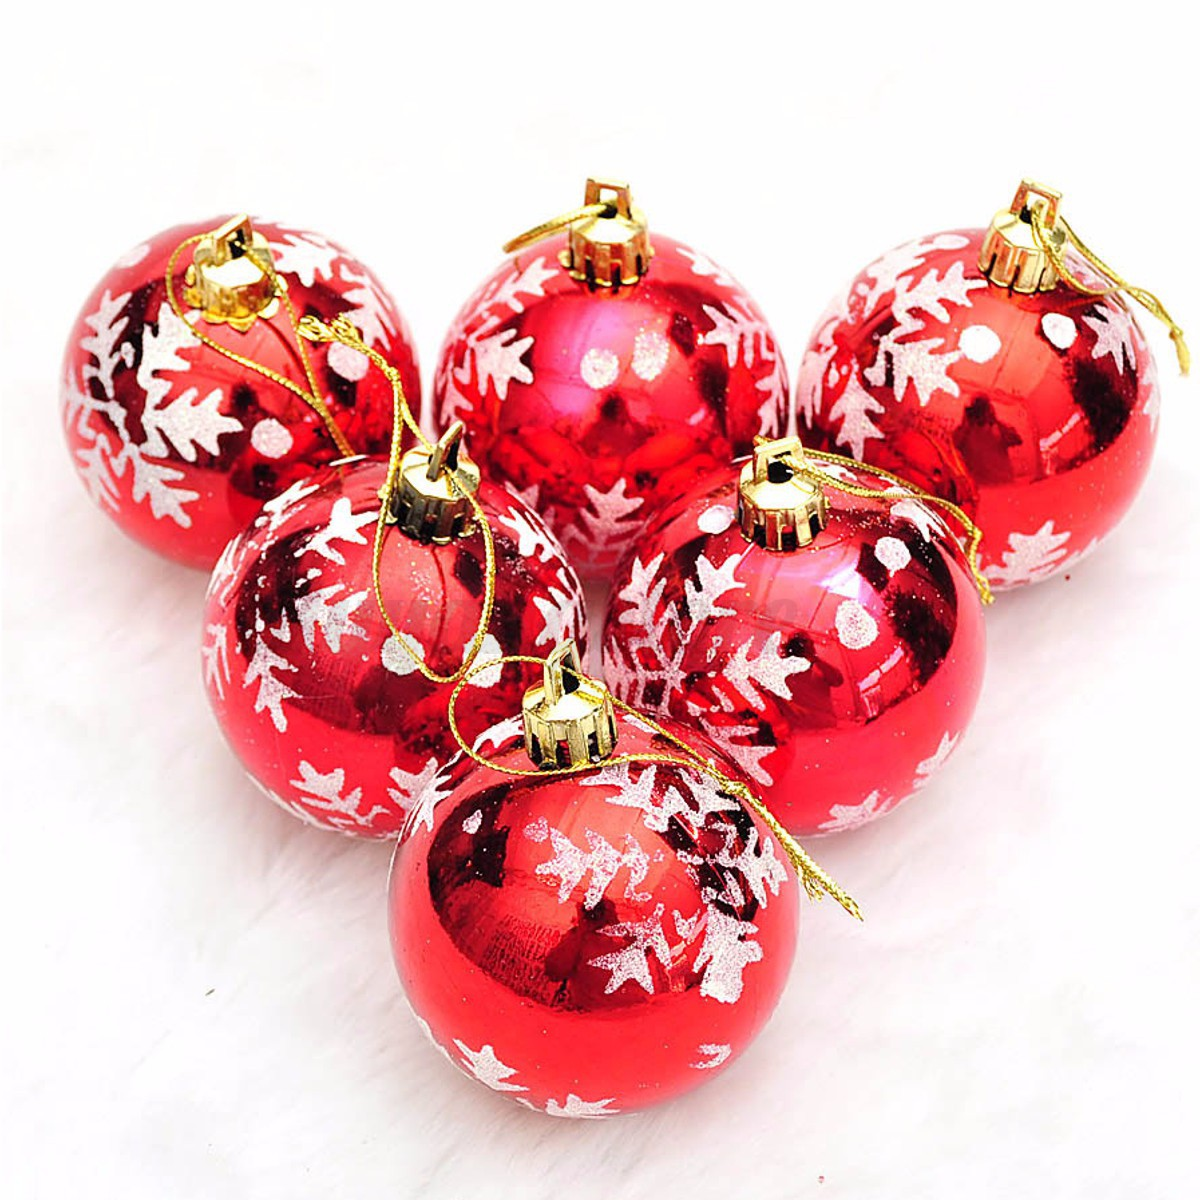 Decorative Christmas Ball Ornaments: 6PCS Snowflake Balls Christmas Ornaments Xmas Tree Hanging